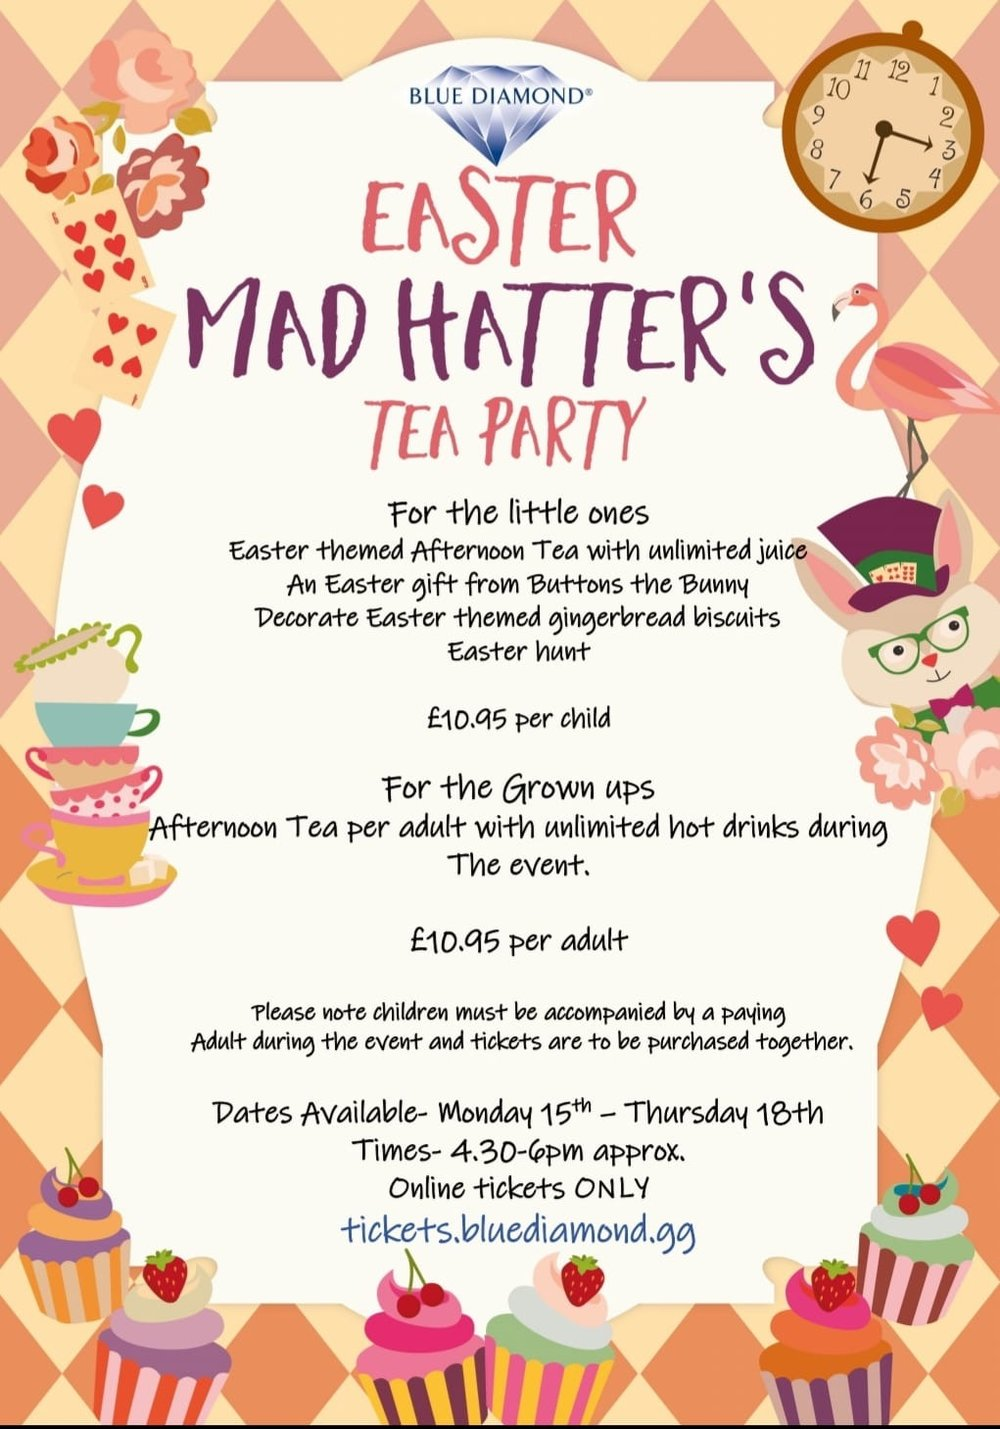 GC - Mad Hatters Tea Party.JPG